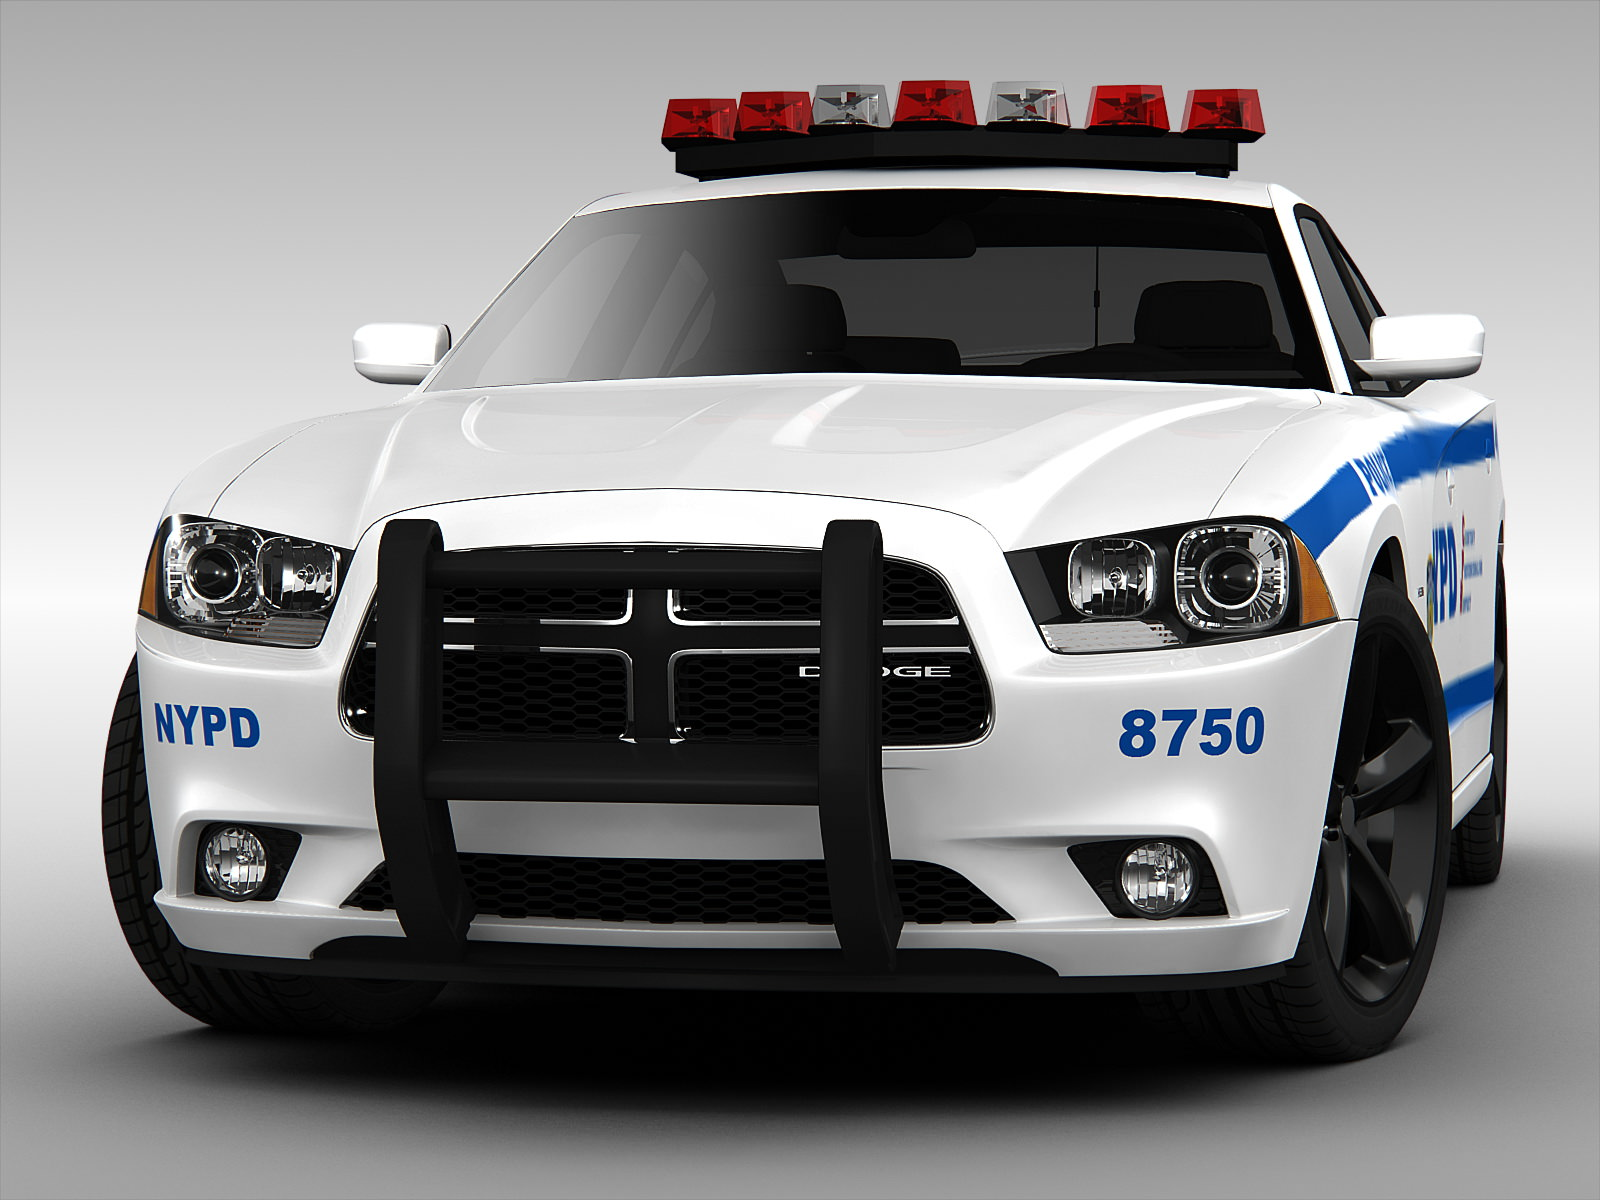 dodge charger nypd police car 2013 3d model max obj 3ds fbx. Black Bedroom Furniture Sets. Home Design Ideas